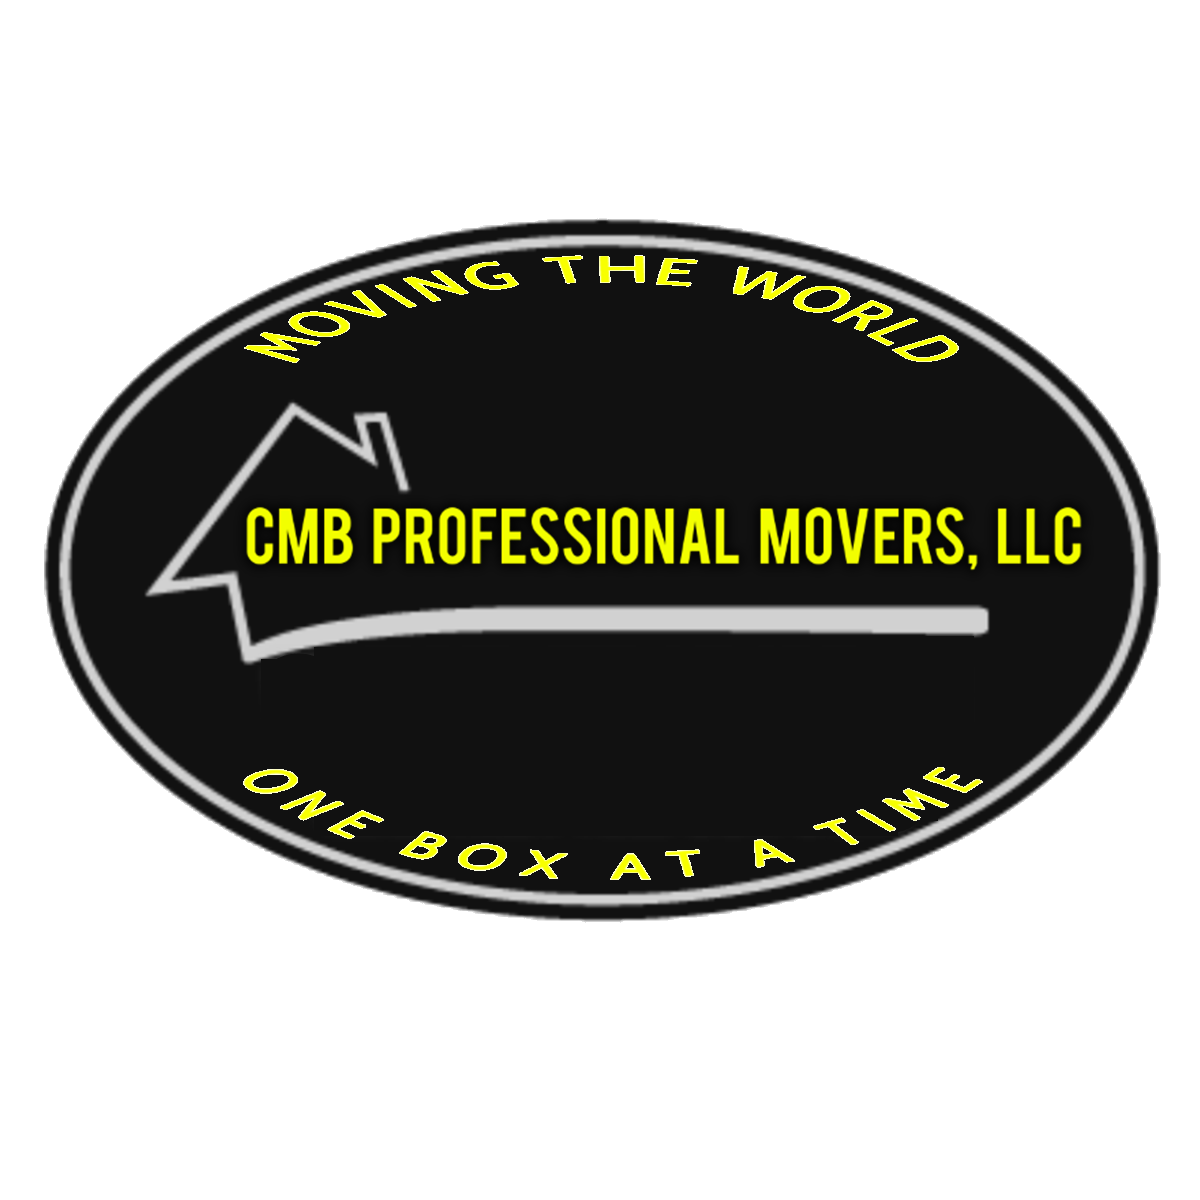 CMB Professional Movers